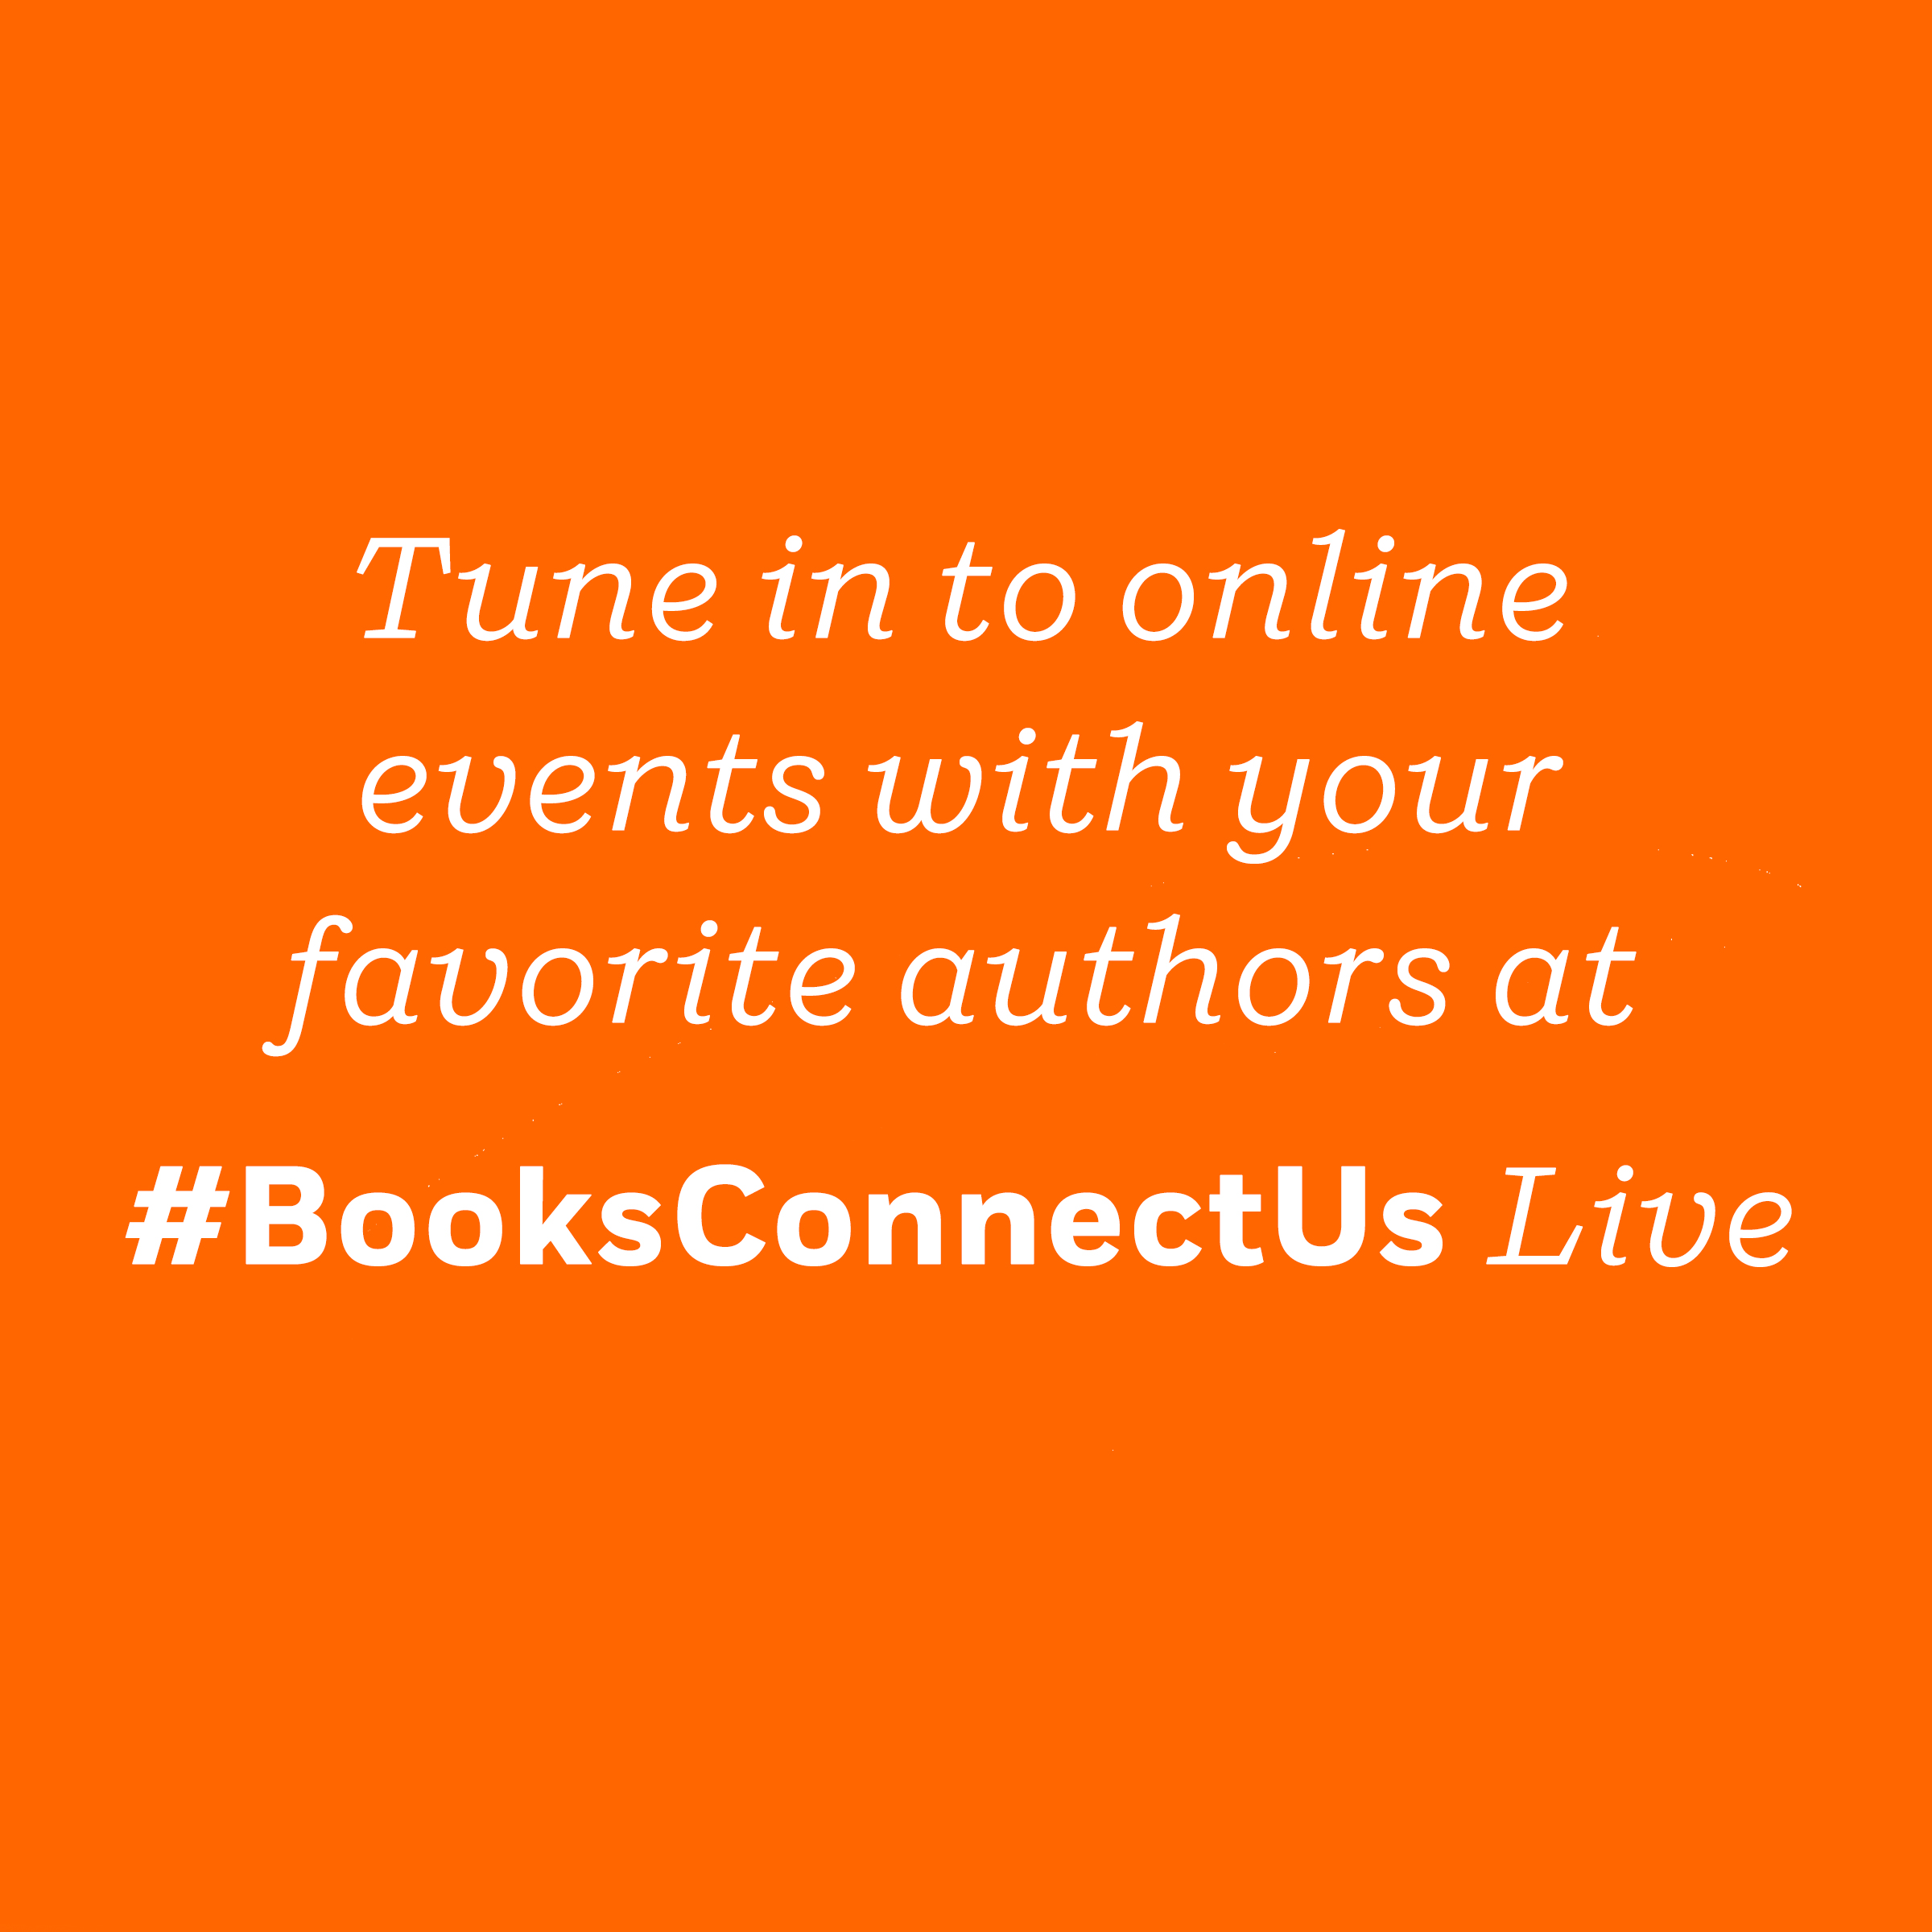 Books Connect Us Live 3/23-3/29